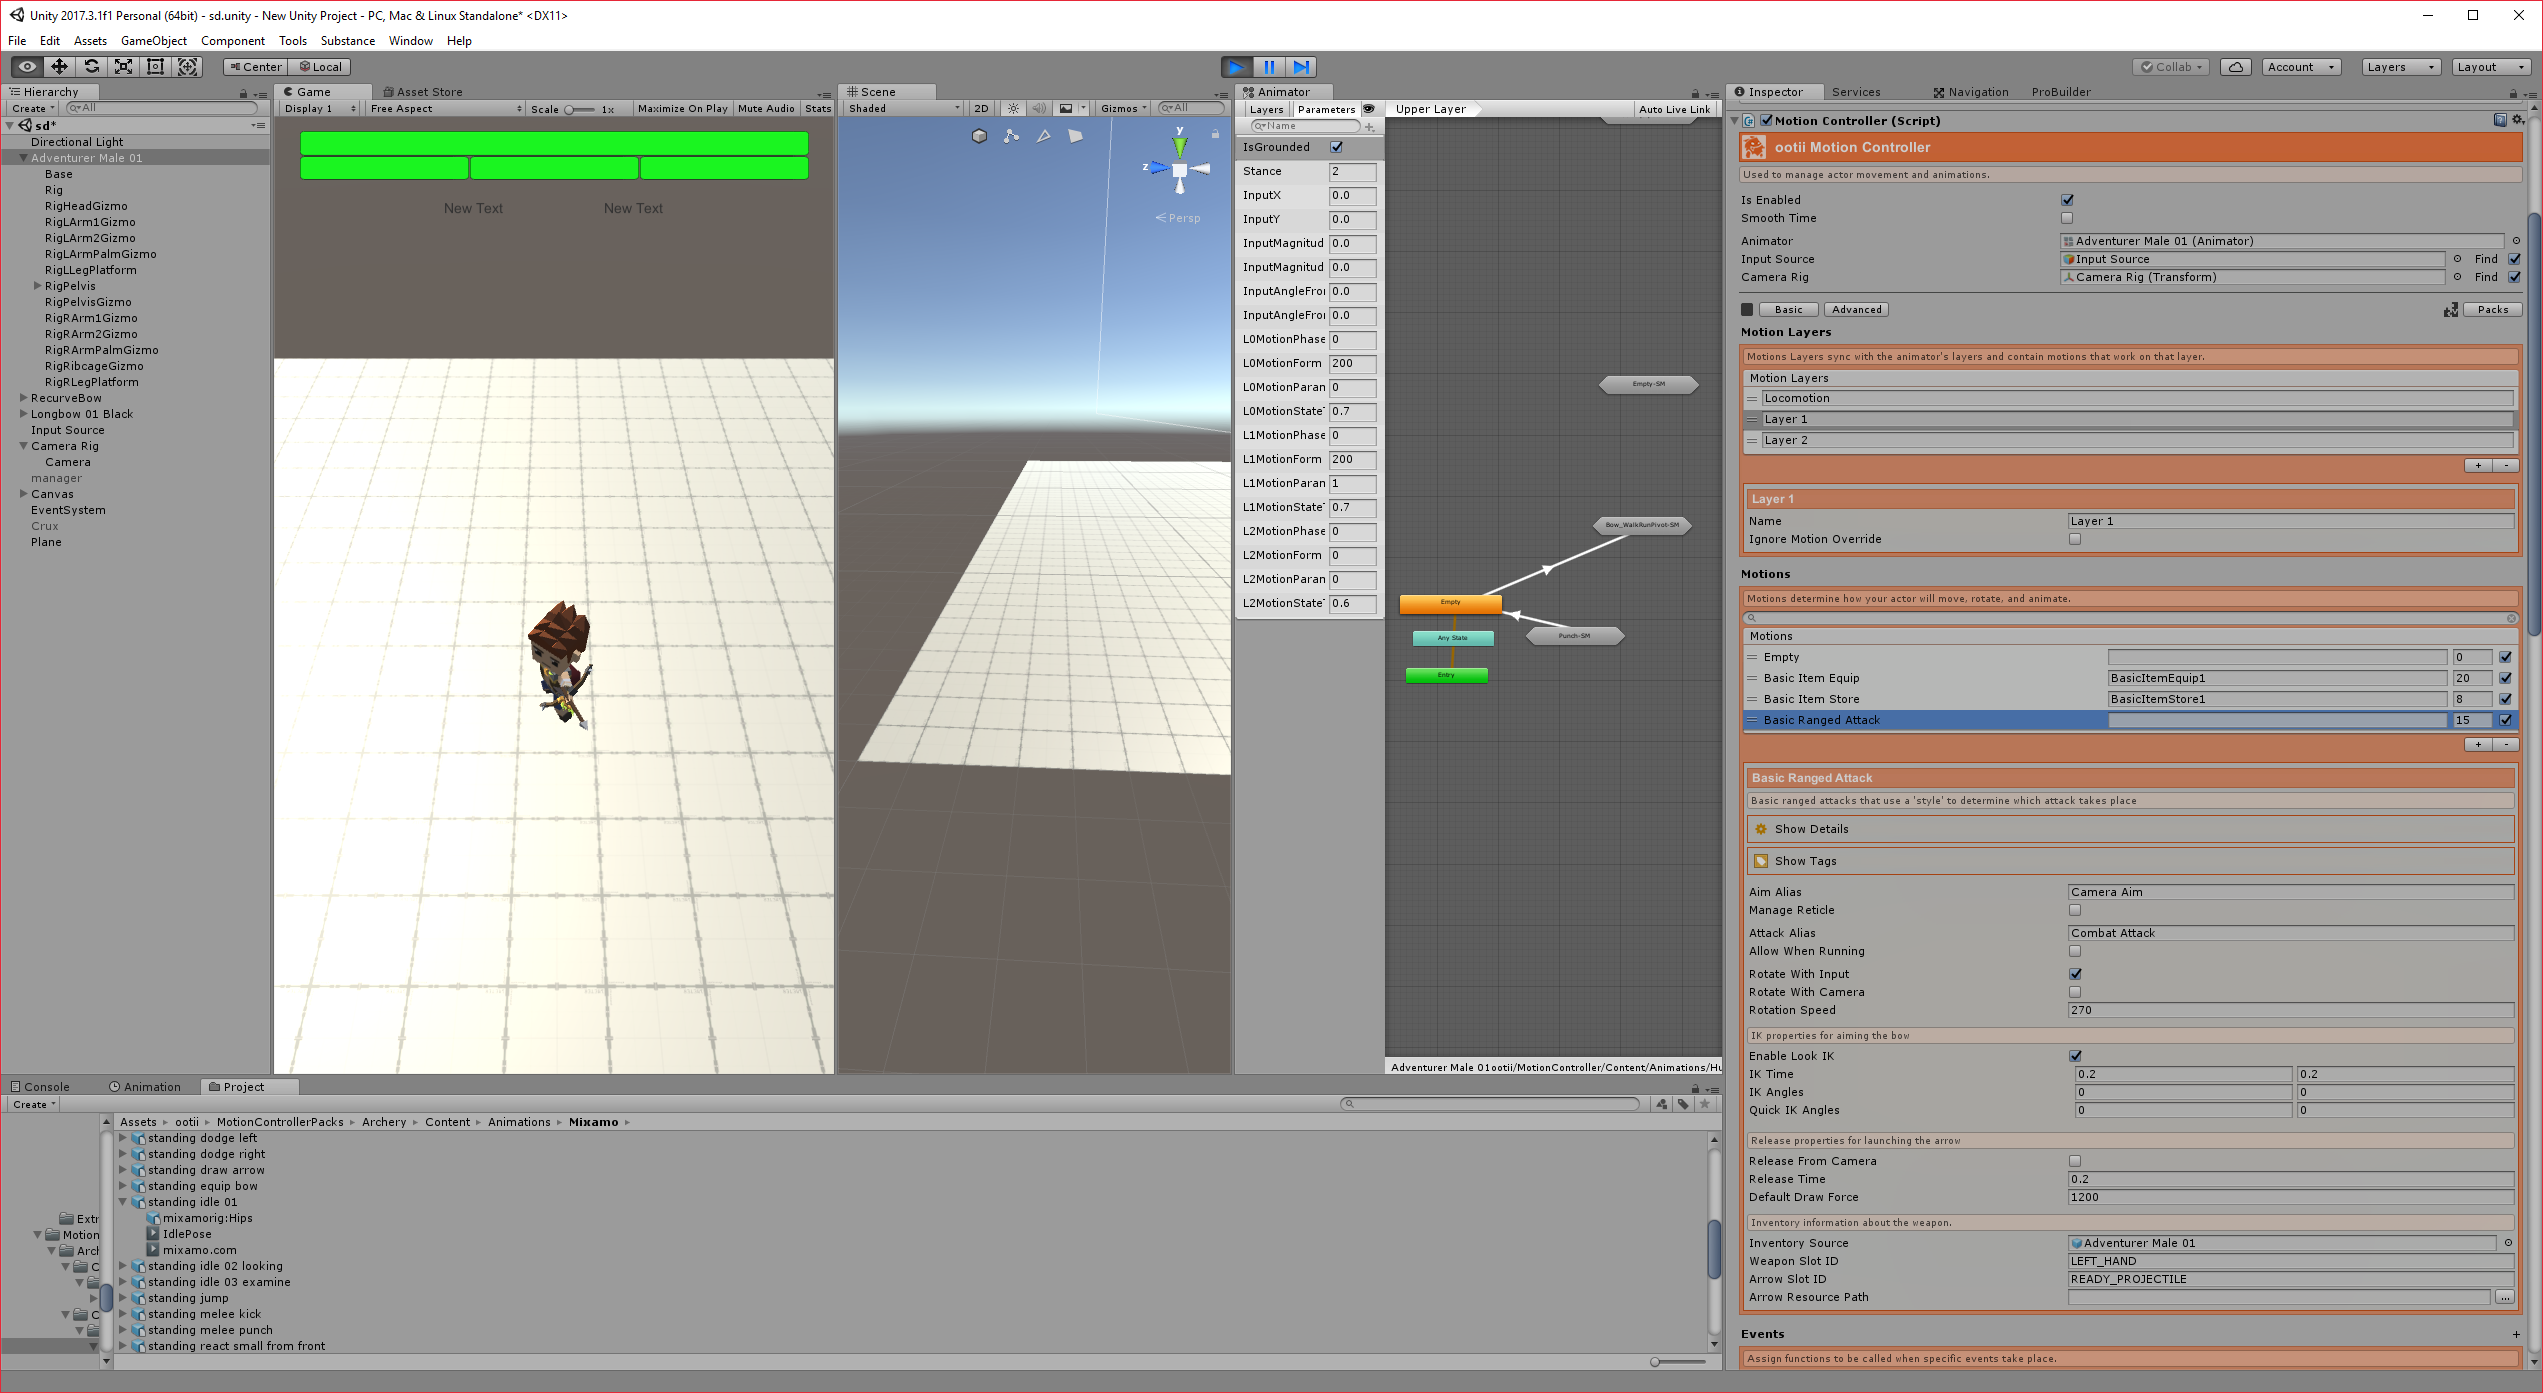 Motion Controller | Page 102 - Unity Forum